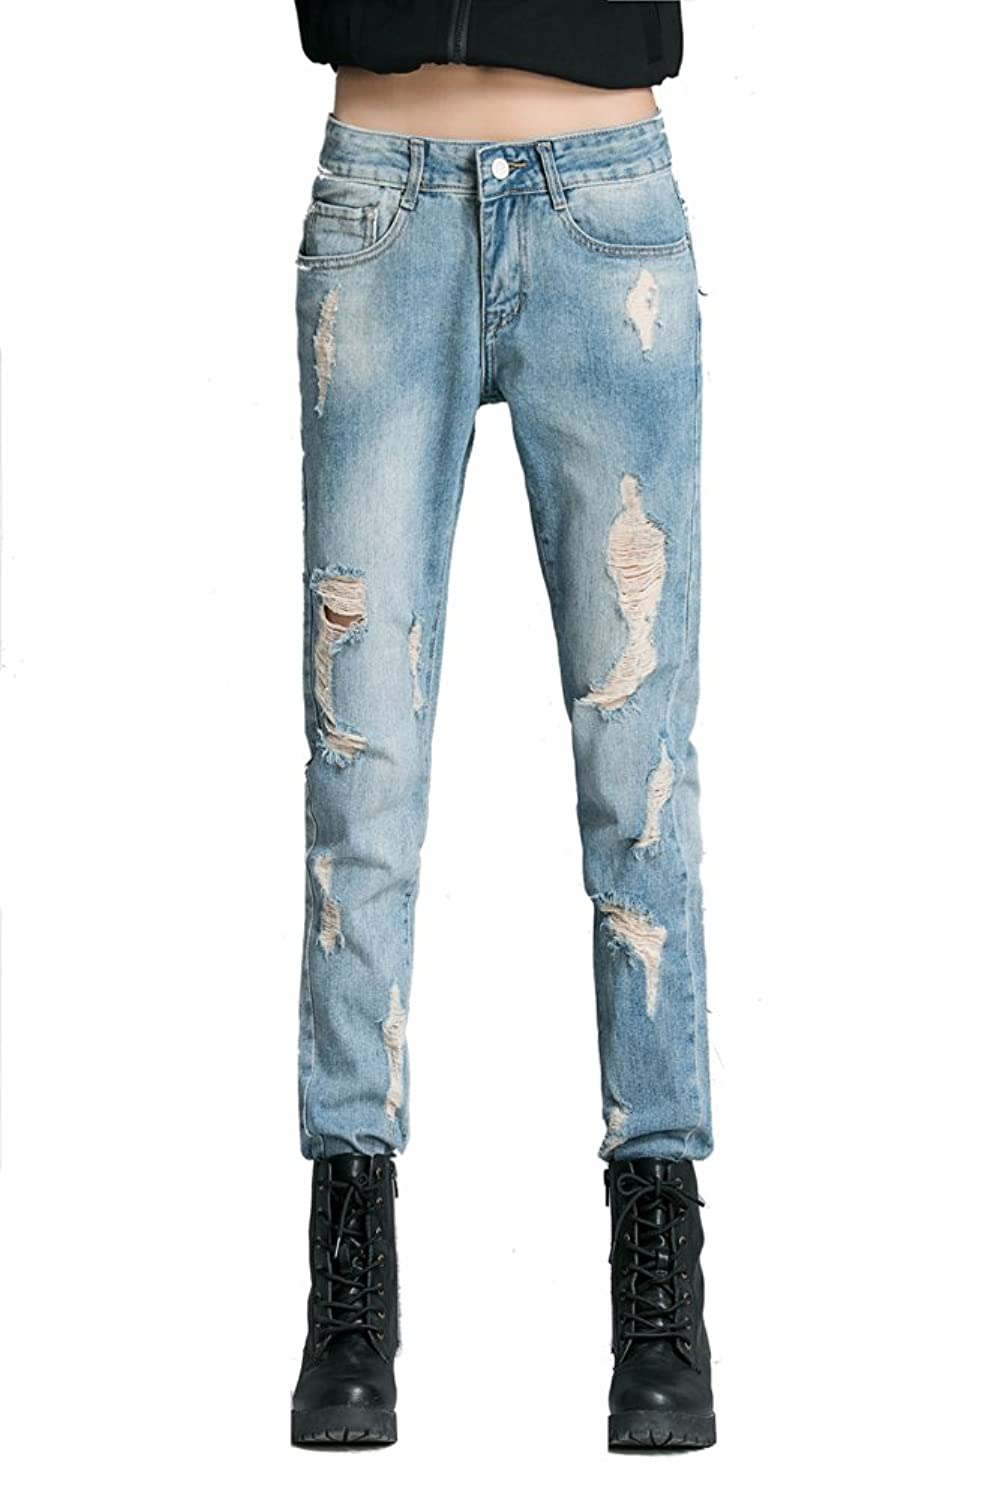 Chickle Women's Casual Mid-Rise Ripped Skinny Denim Jeans